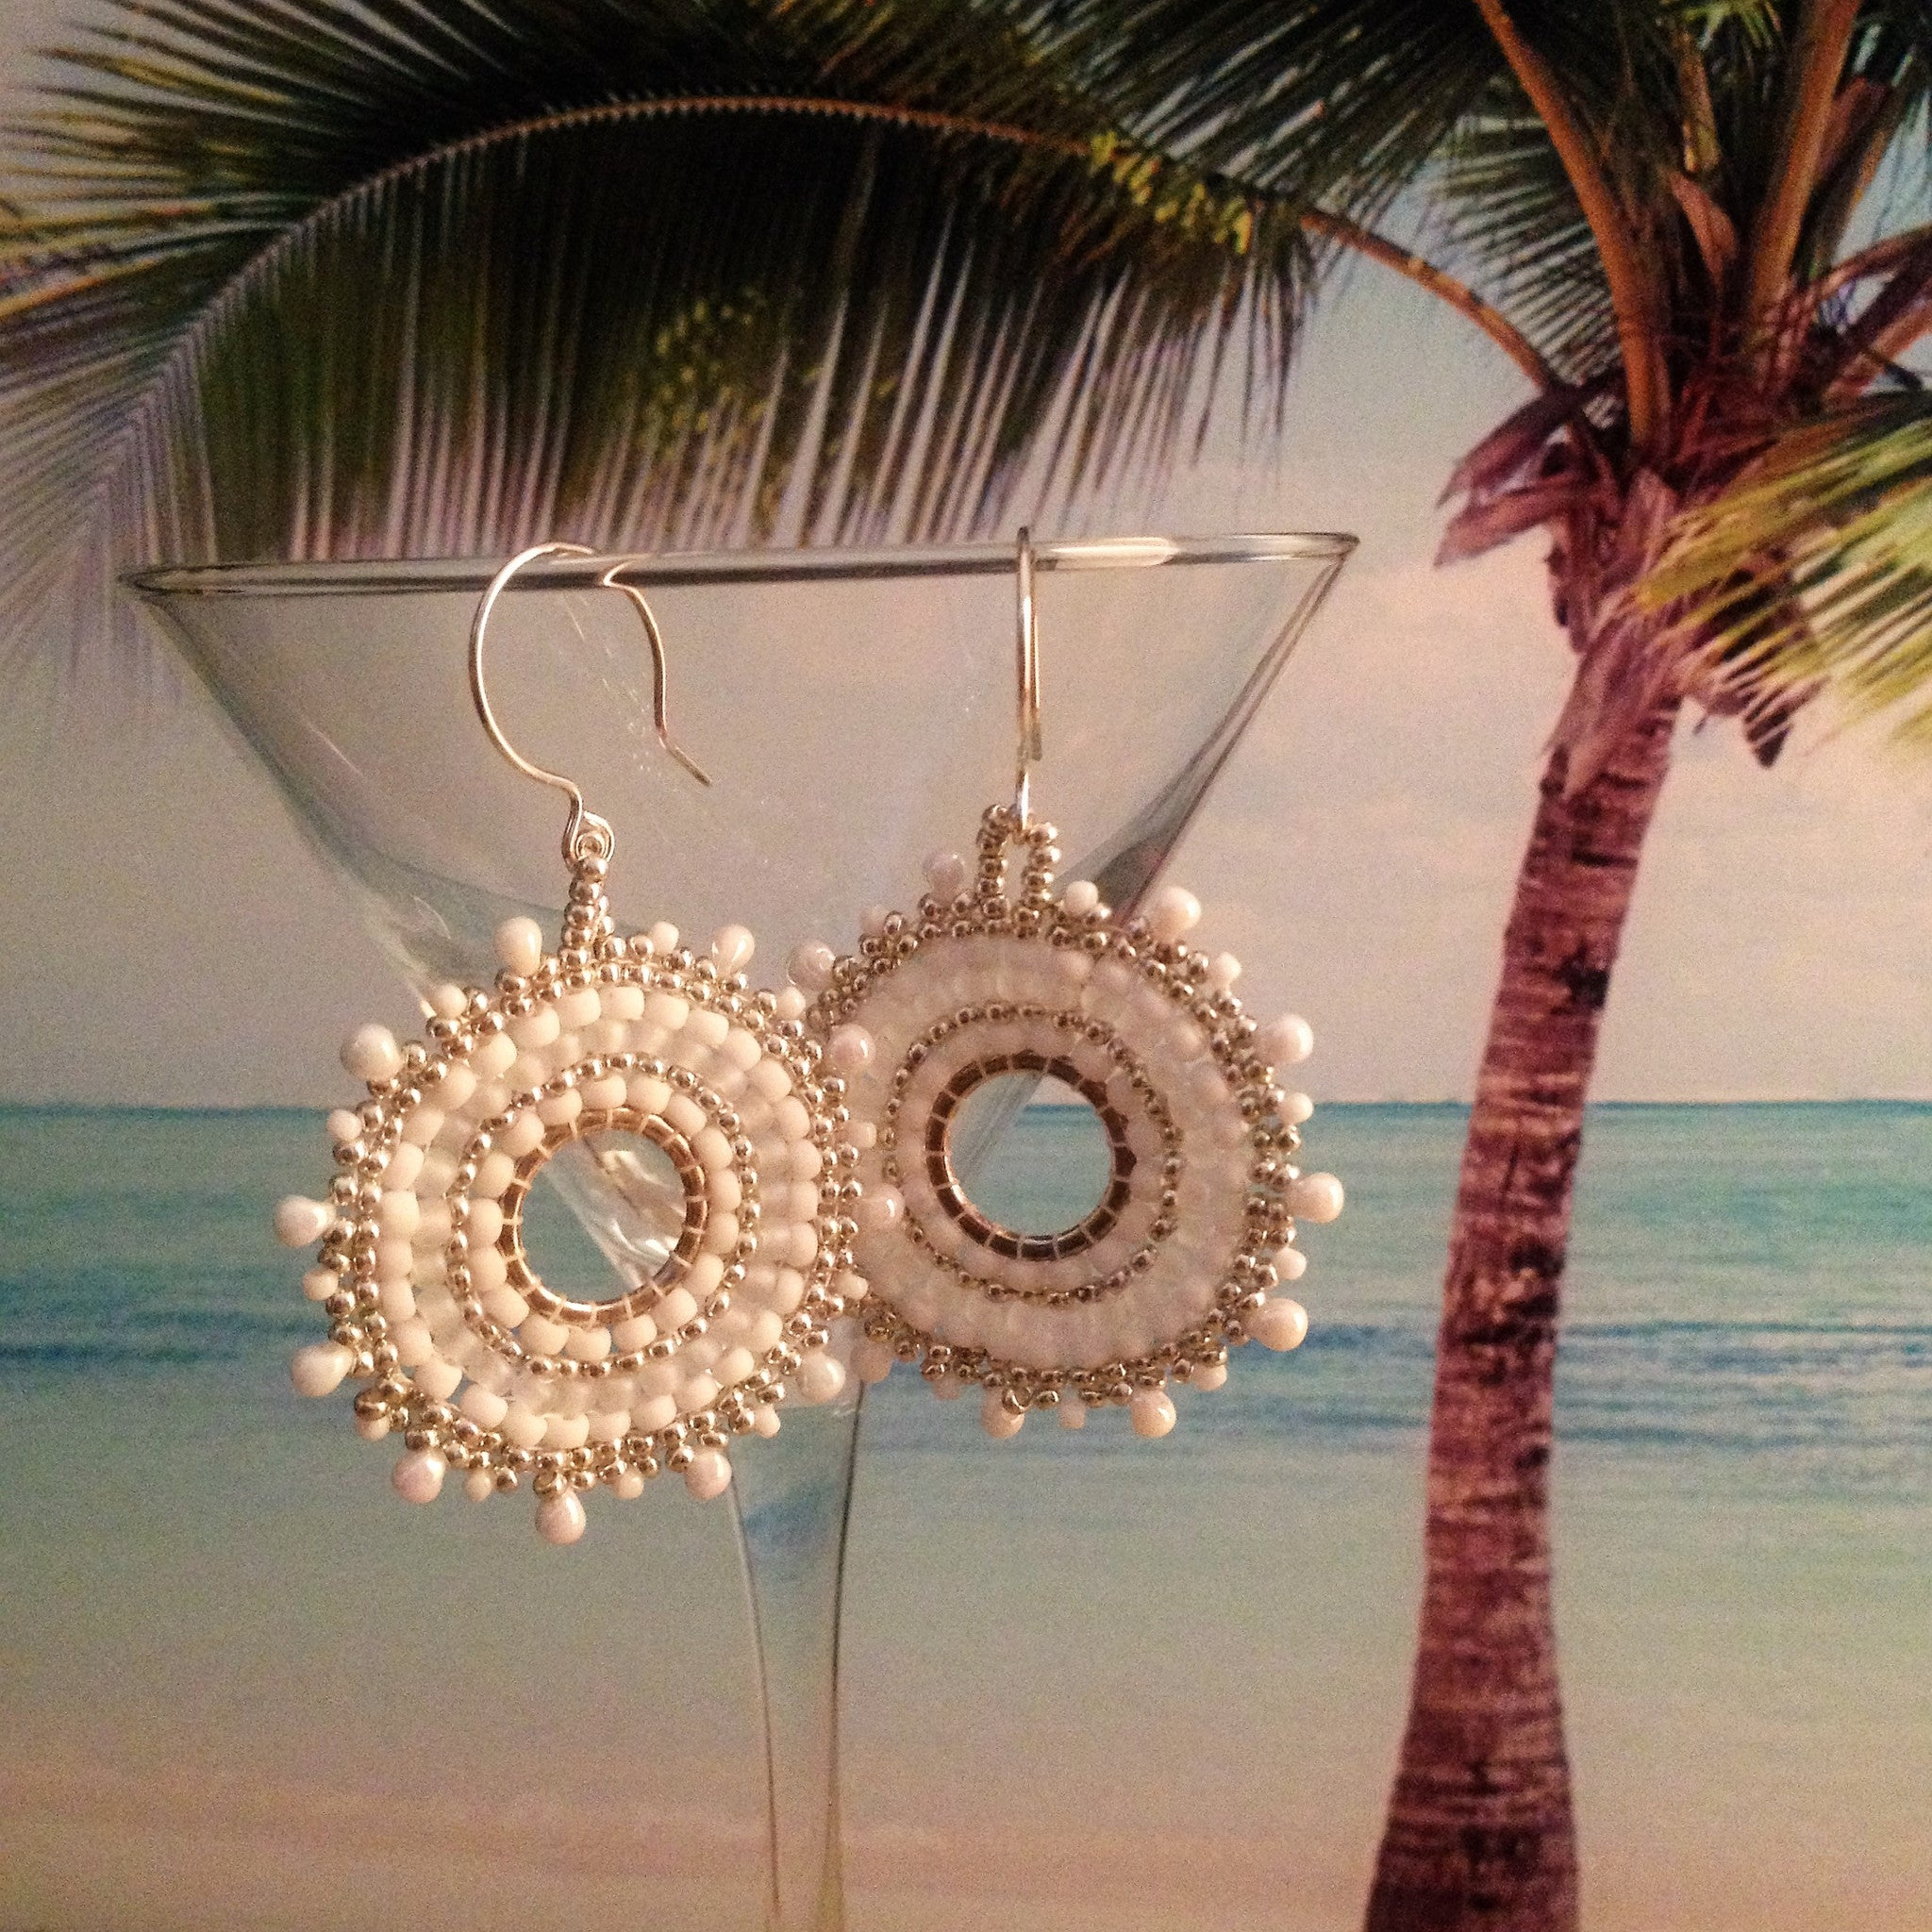 White and silver beaded Beachy Bridal handmade earrings in casual sunburst design customizable Beaded By The Beach  prom resort style